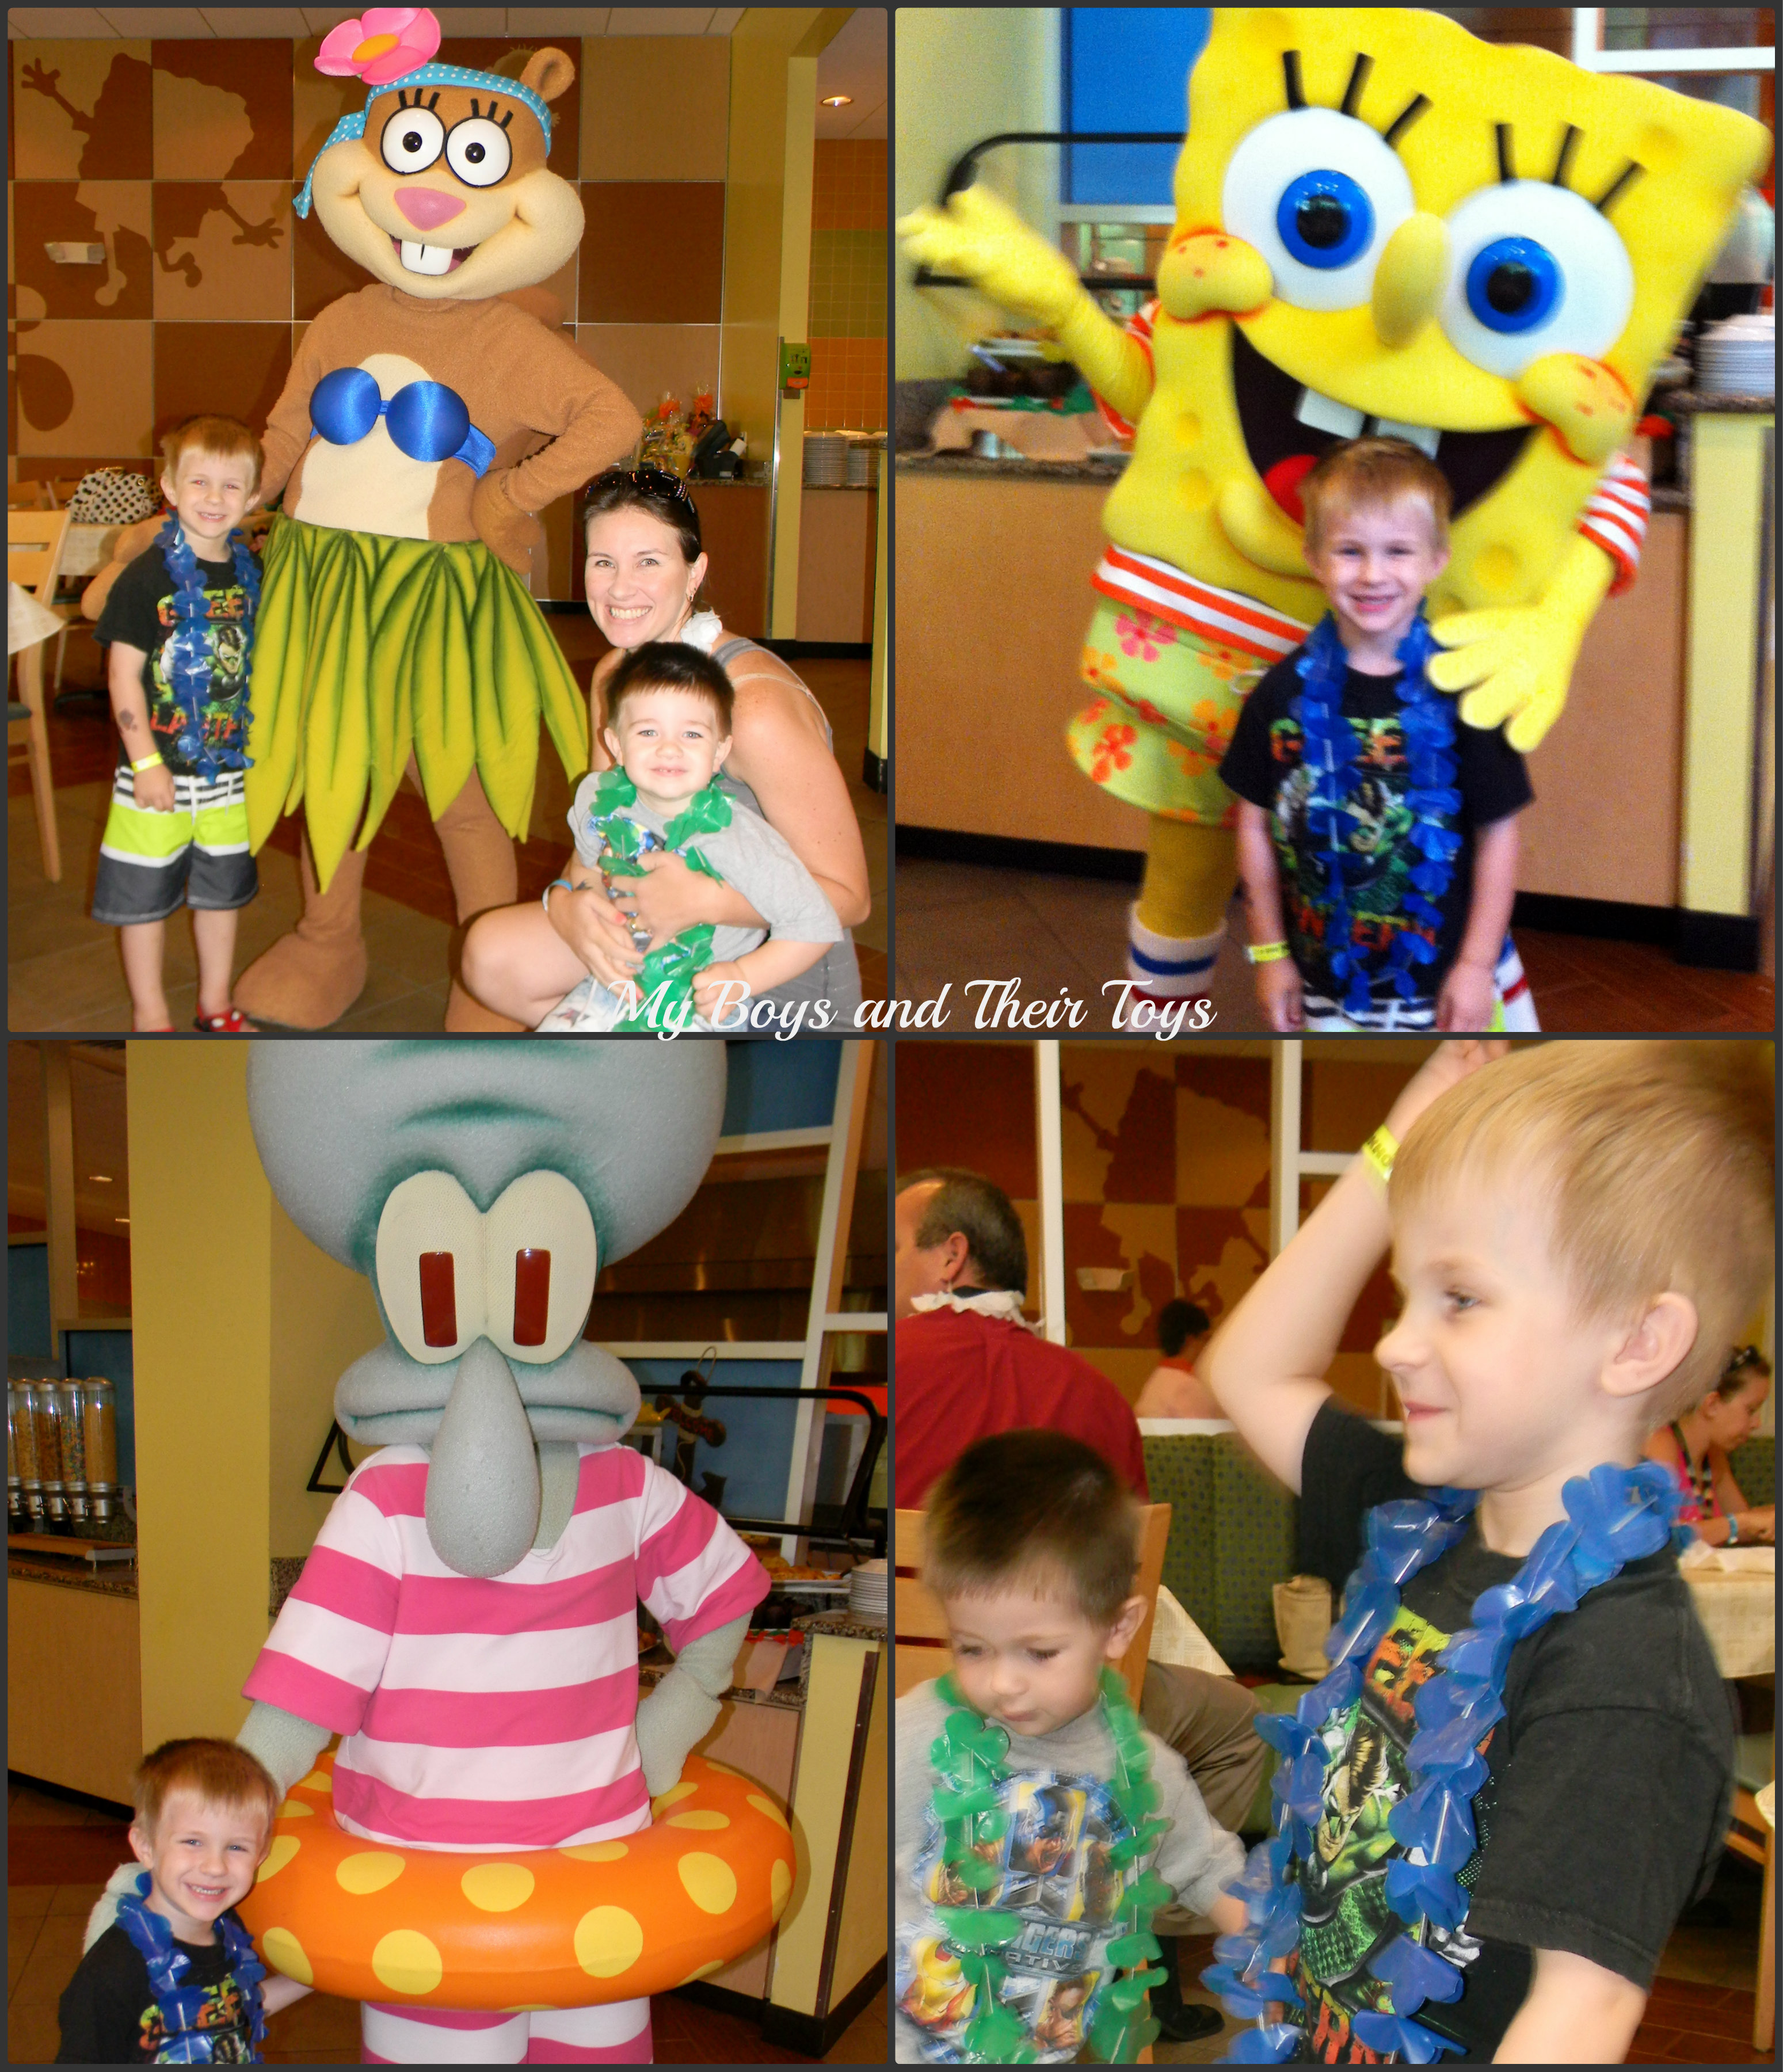 Boys And Their Toys : Nickelodeon suites resort archives my boys and their toys